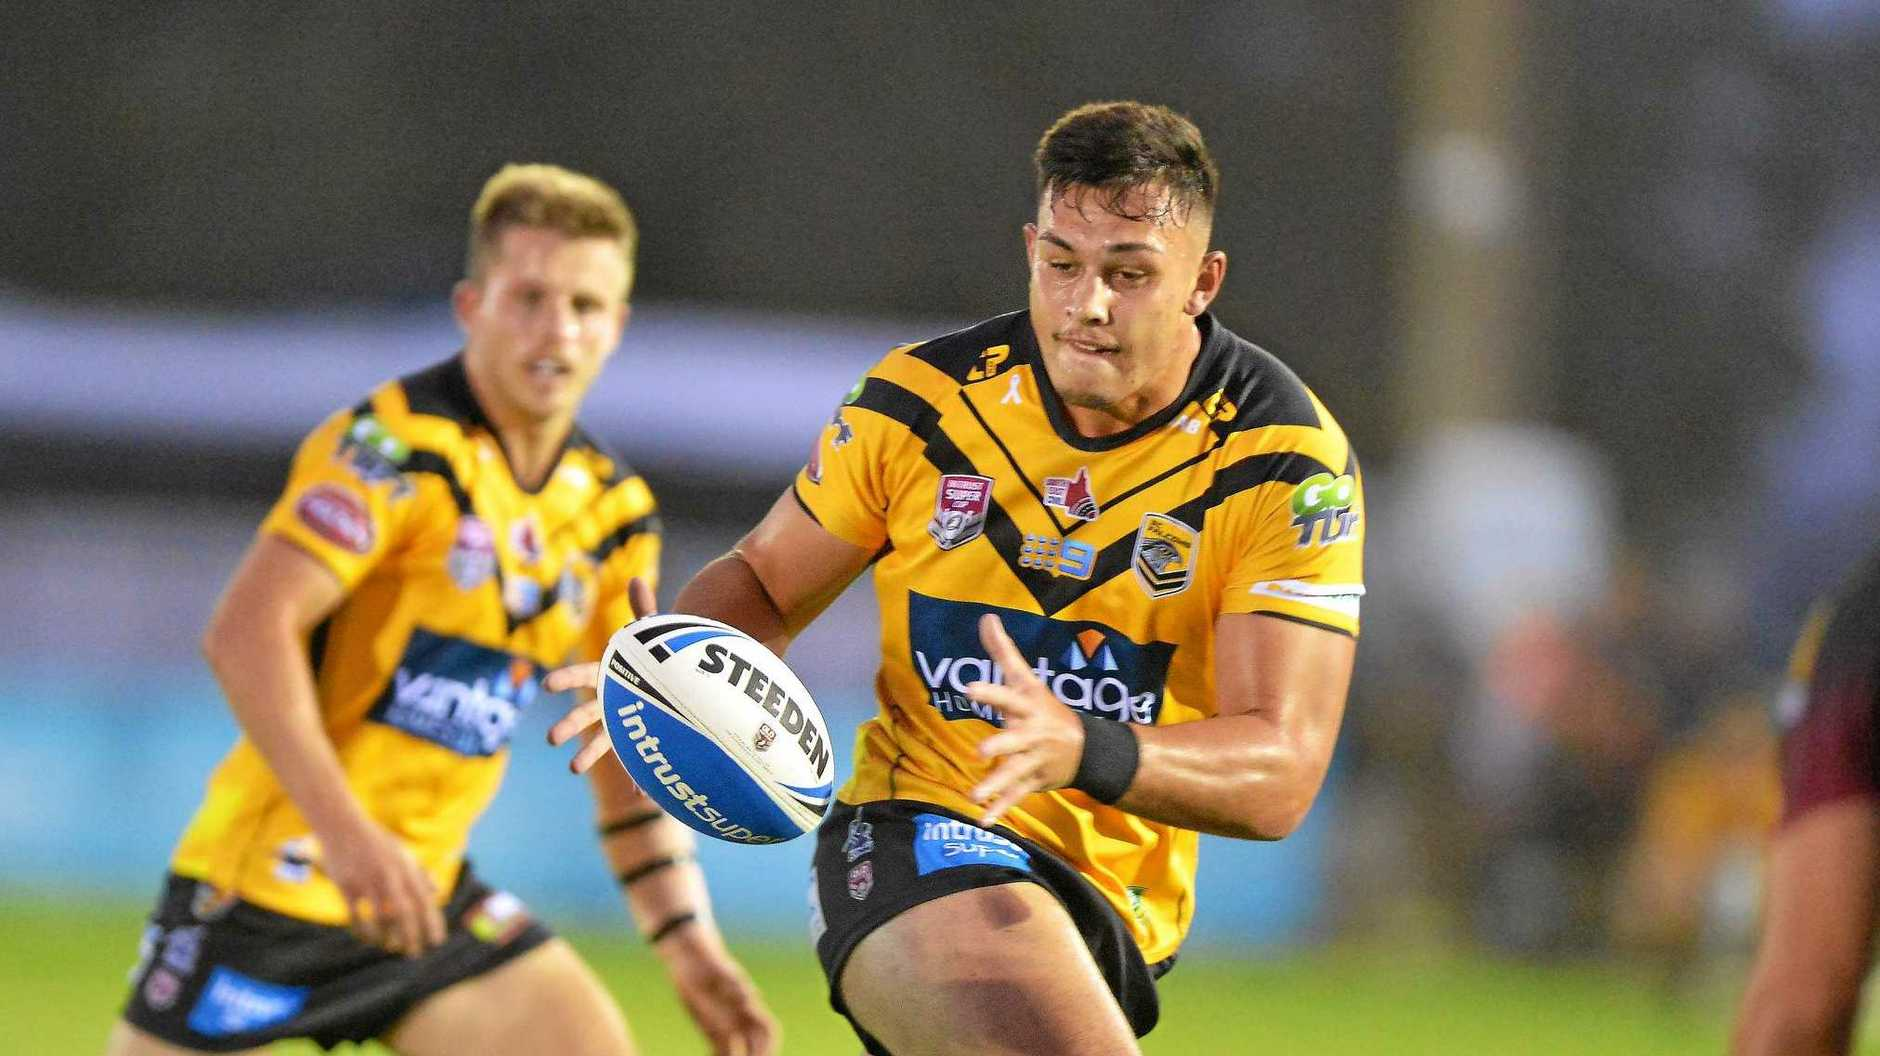 Teenage giant Tino Fa'Asuamaleaui will be unleashed for the Melbourne Storm on Thursday night, making his long-awaited NRL debut. Tino has been rock solid for the Sunshine Coast Falcons.